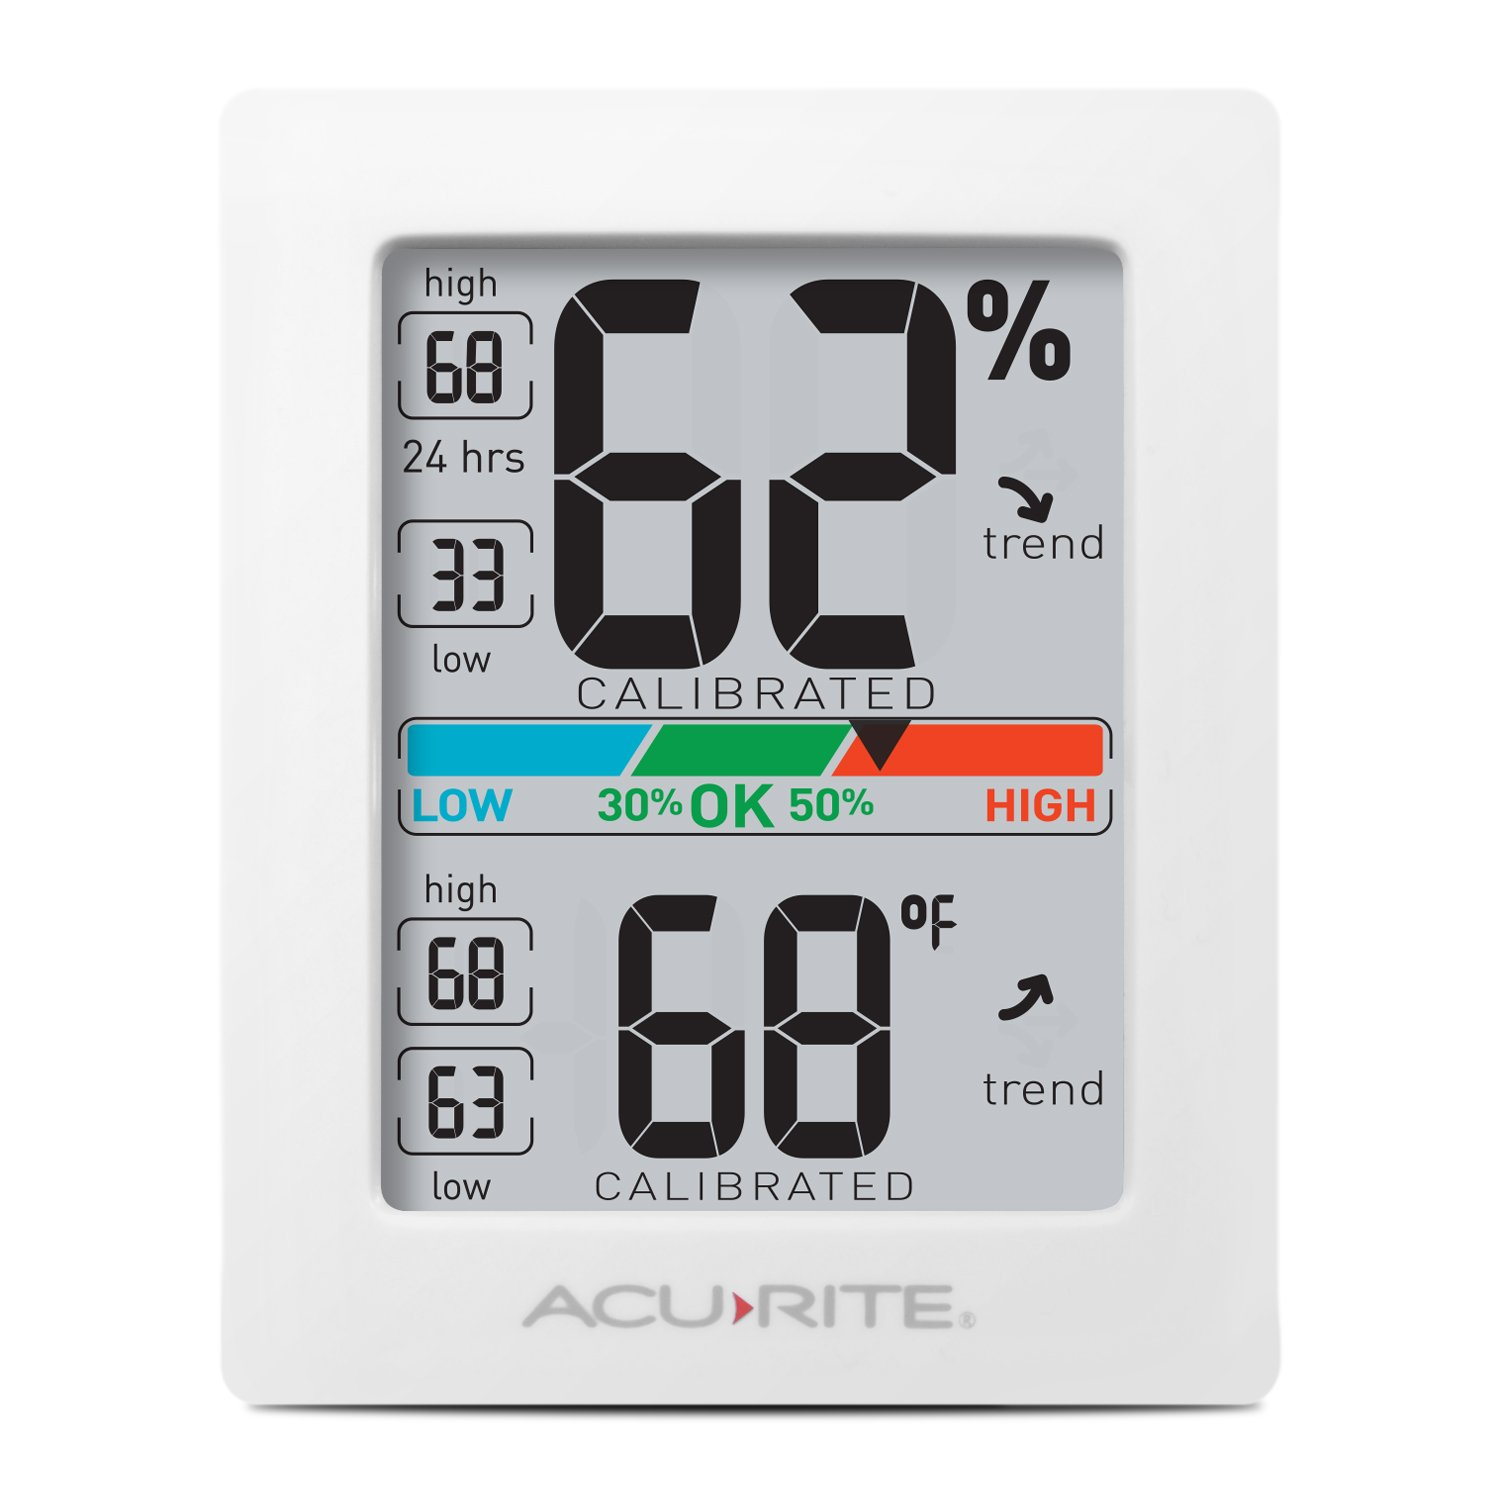 AcuRite 01083 Indoor Thermometer & Hygrometer with Humidity Gauge & Pro Accuracy Calibration, White by AcuRite